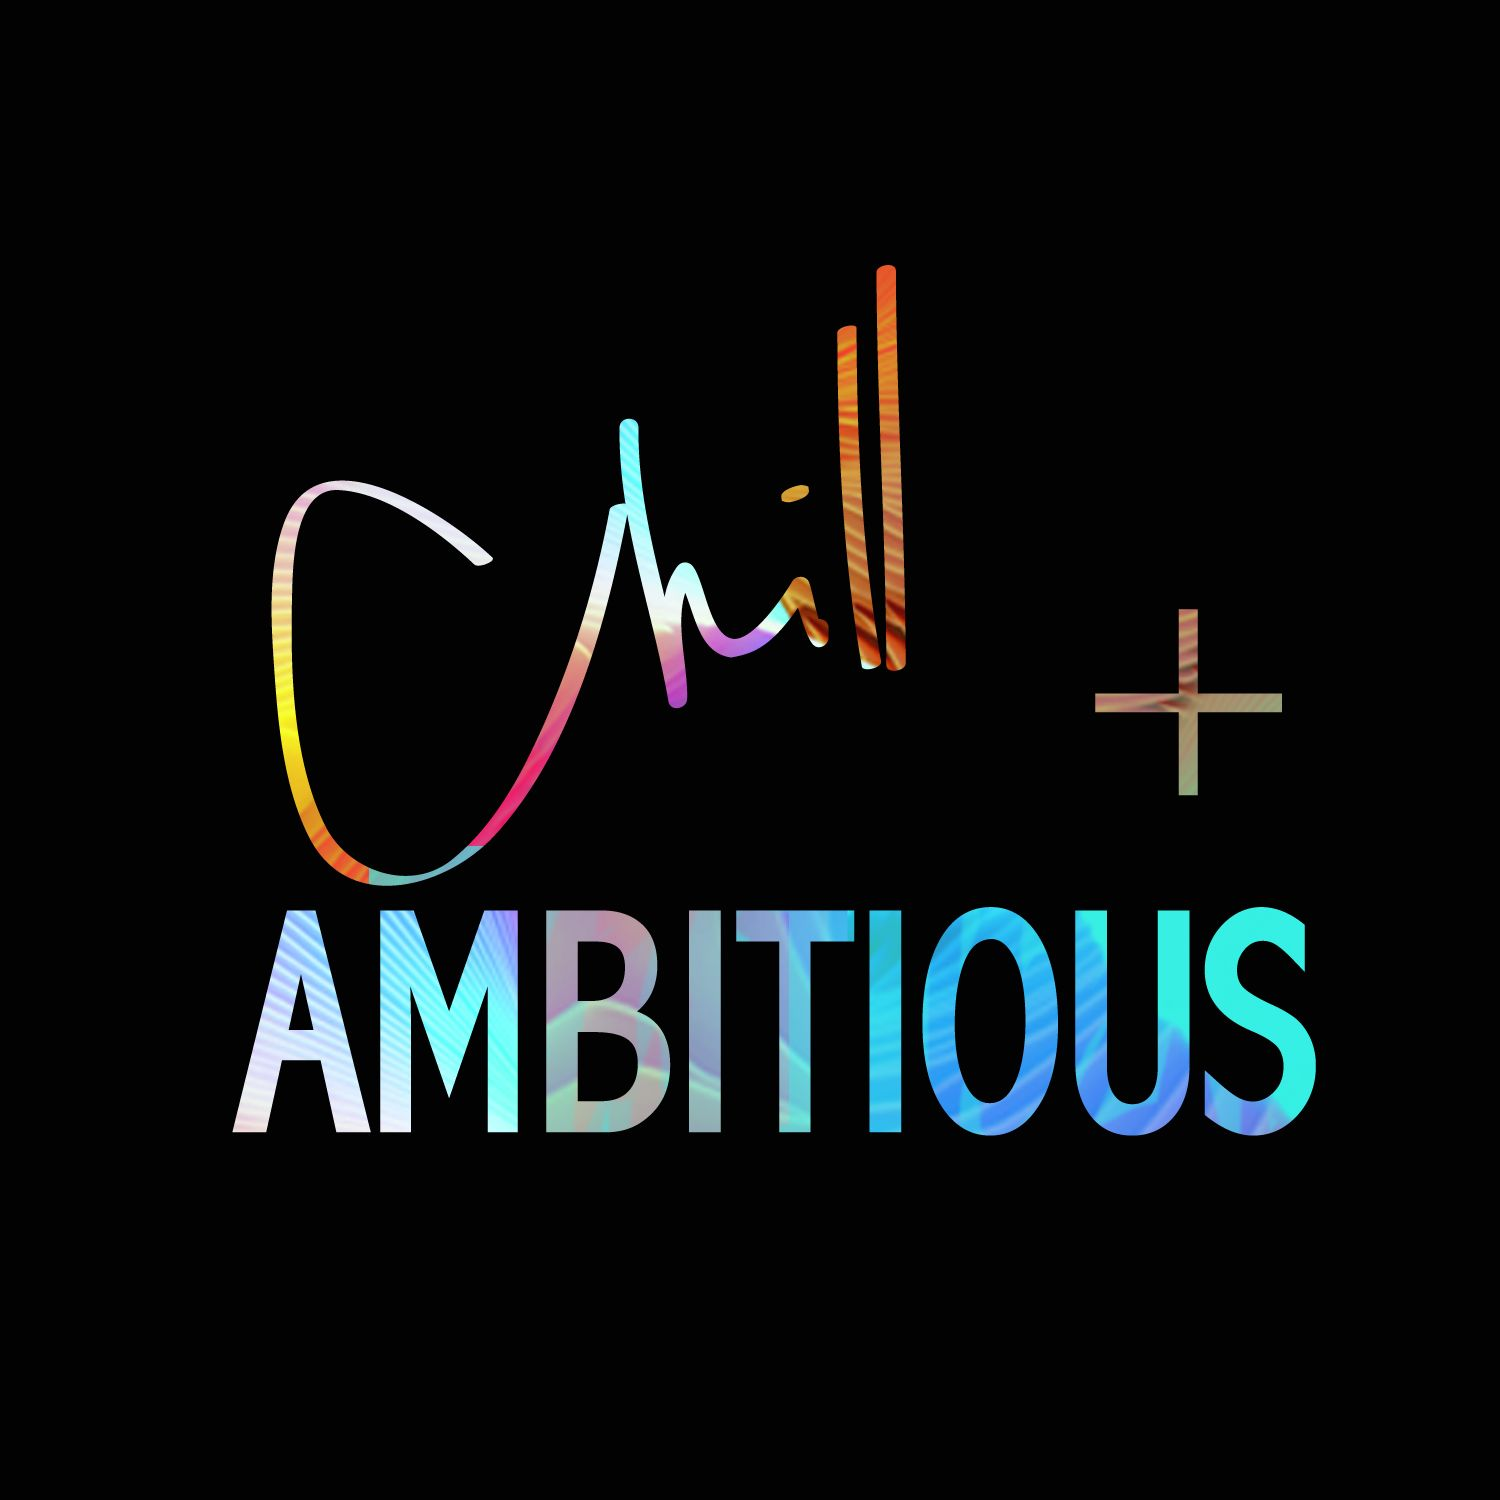 Chill + Ambitious